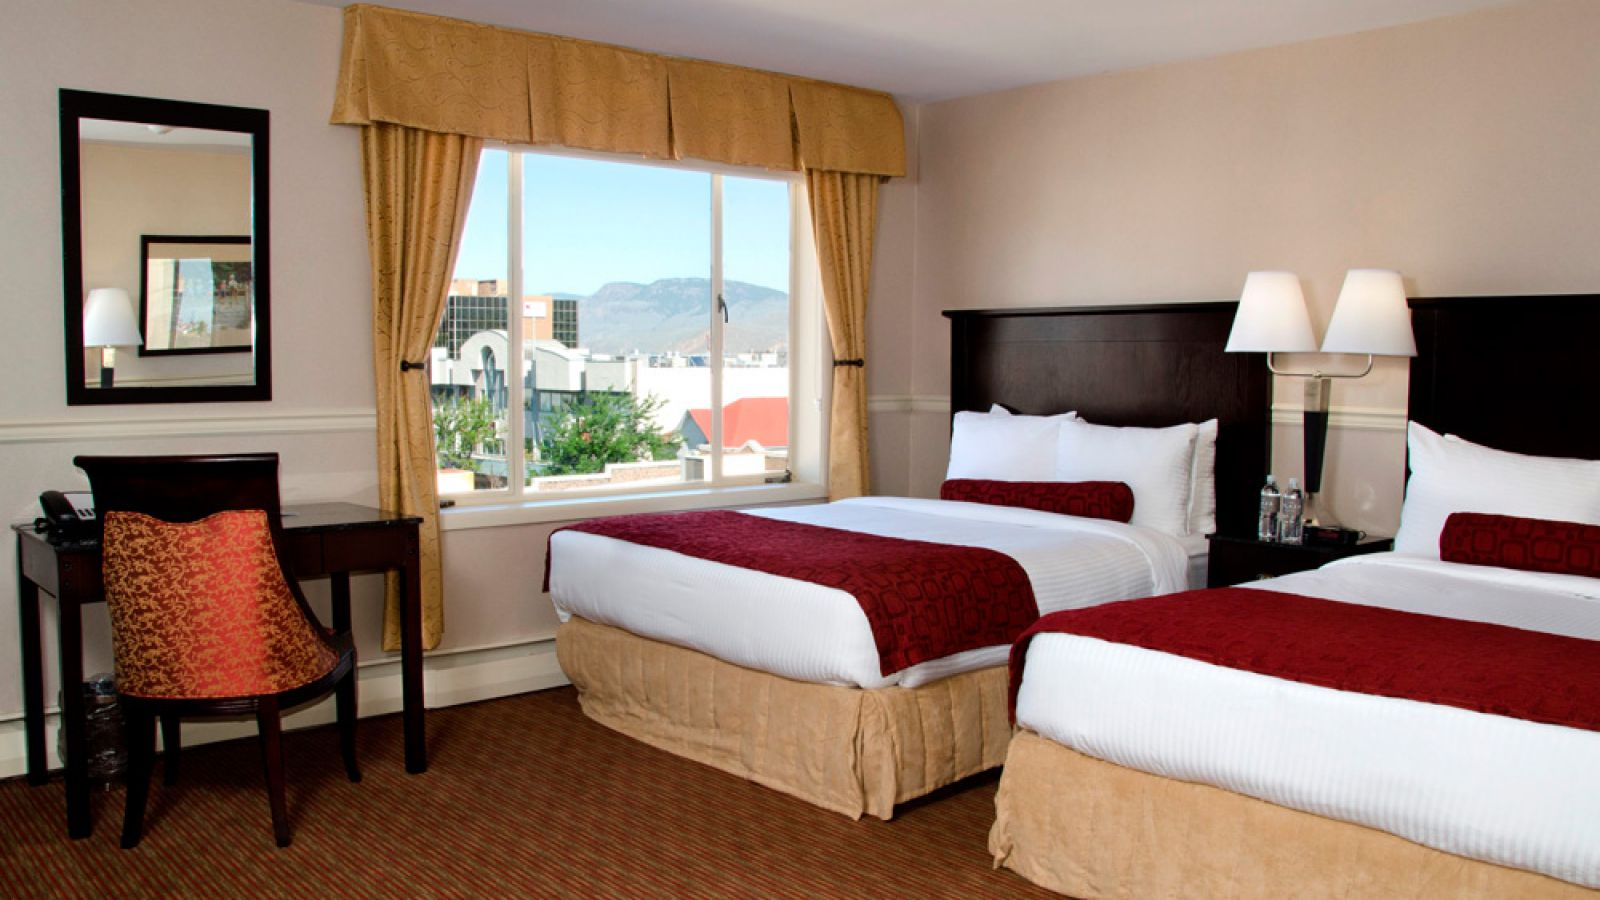 Plaza Hotel Kamloops - Standard 1 queen room